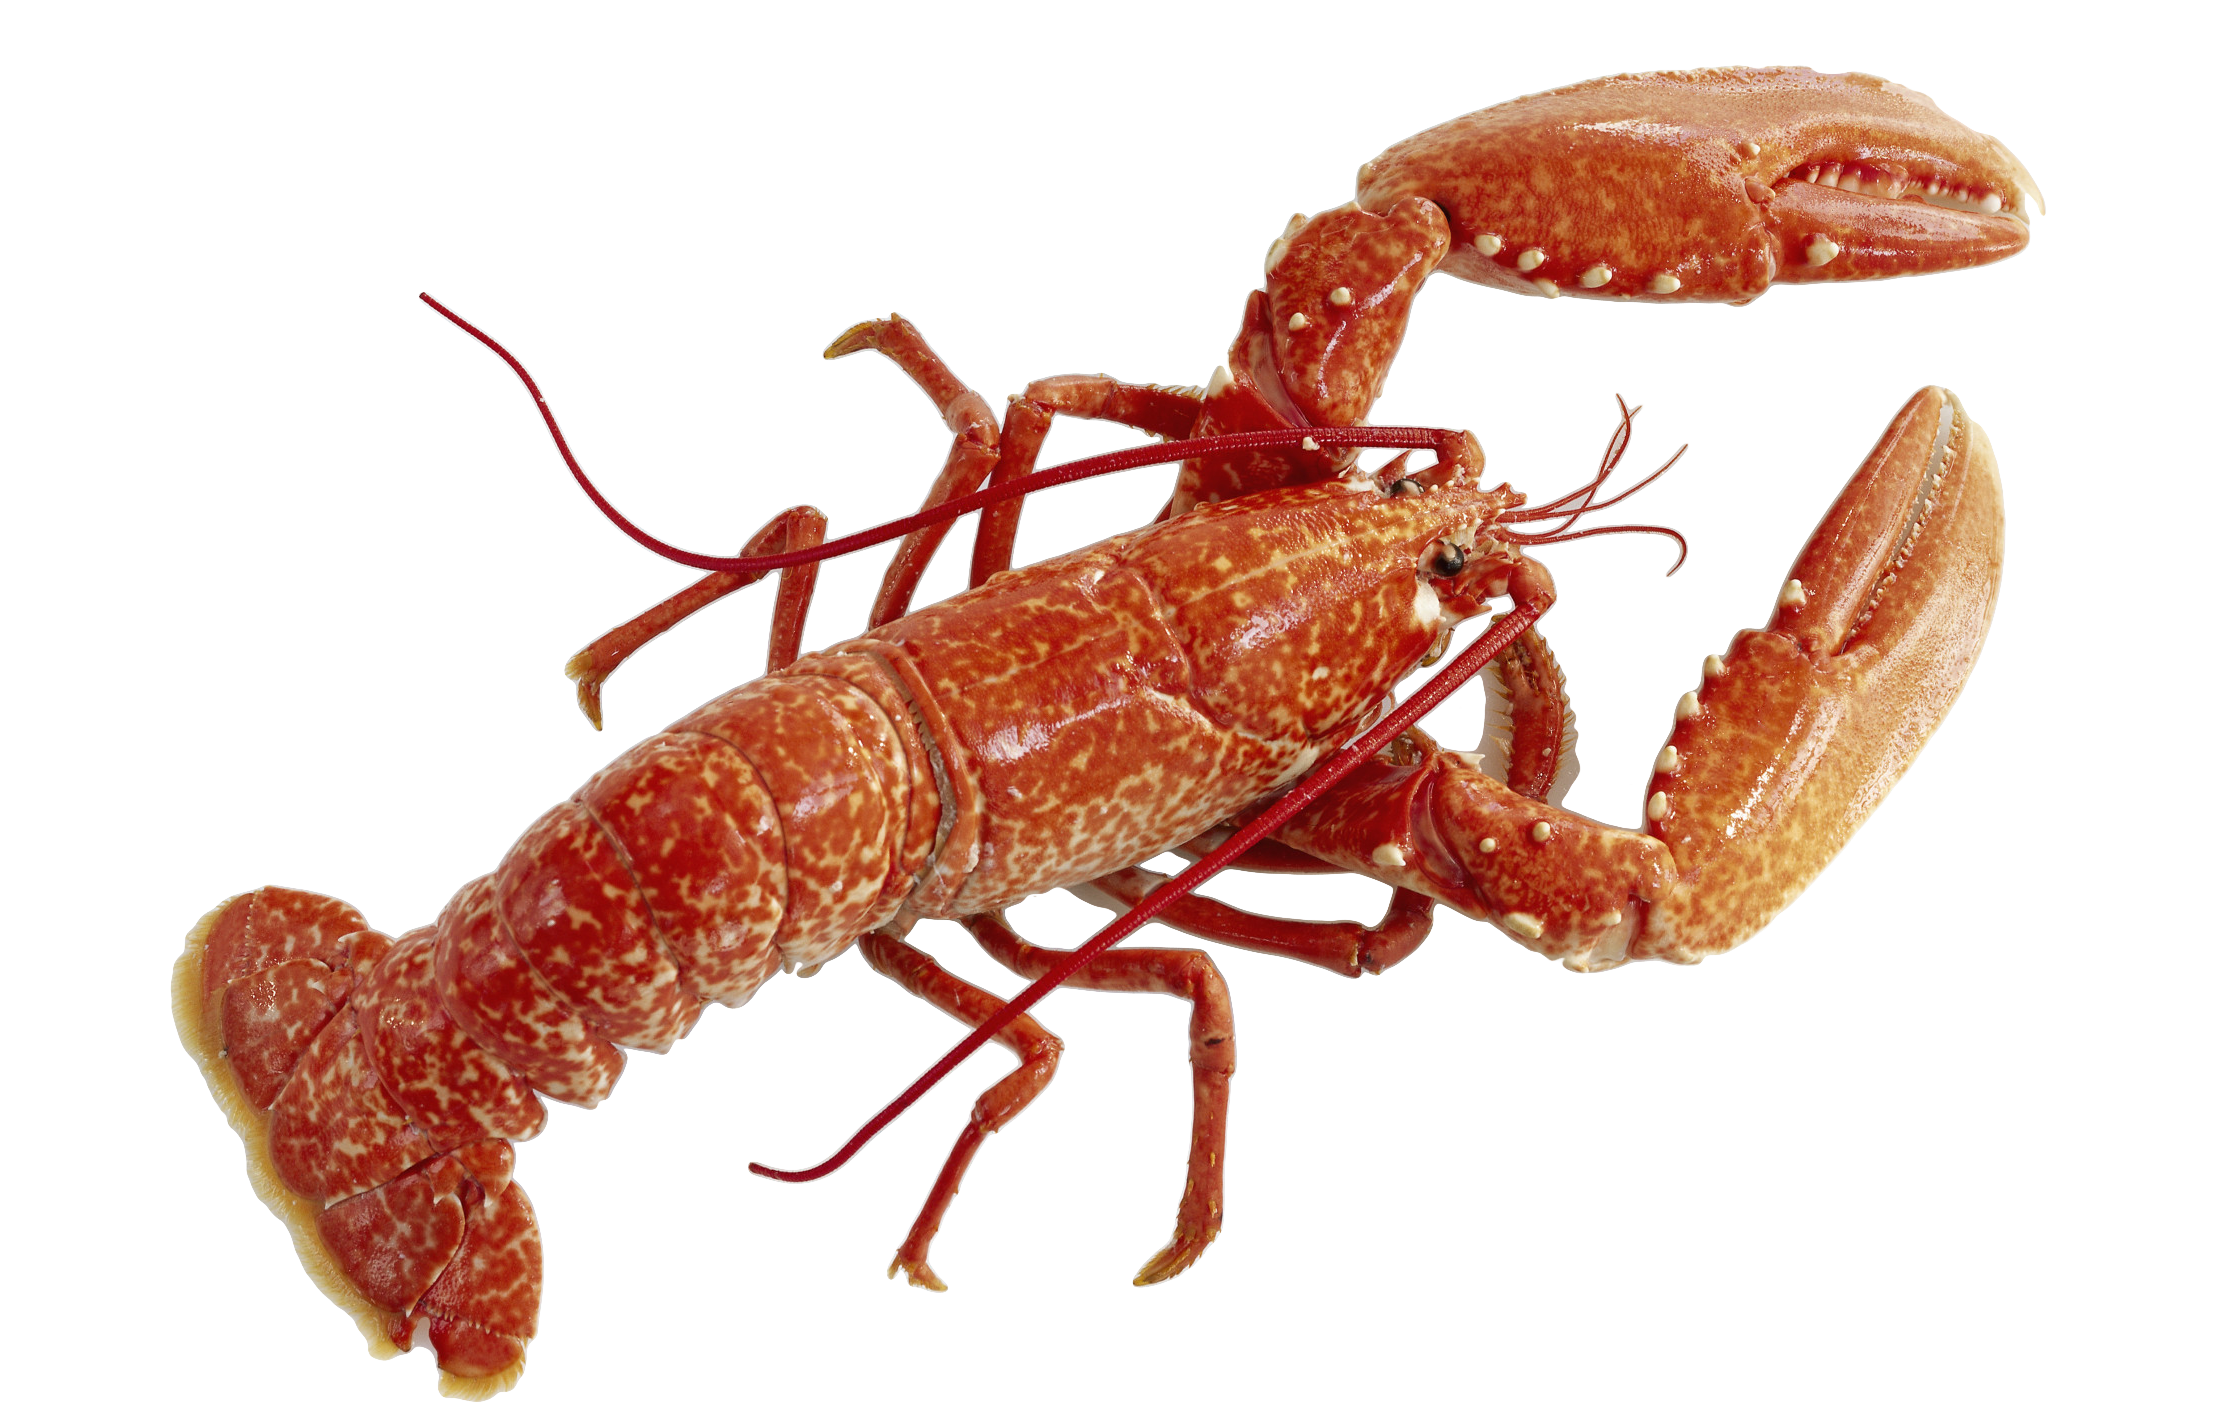 Lobster HD wallpapers, Desktop wallpaper - most viewed